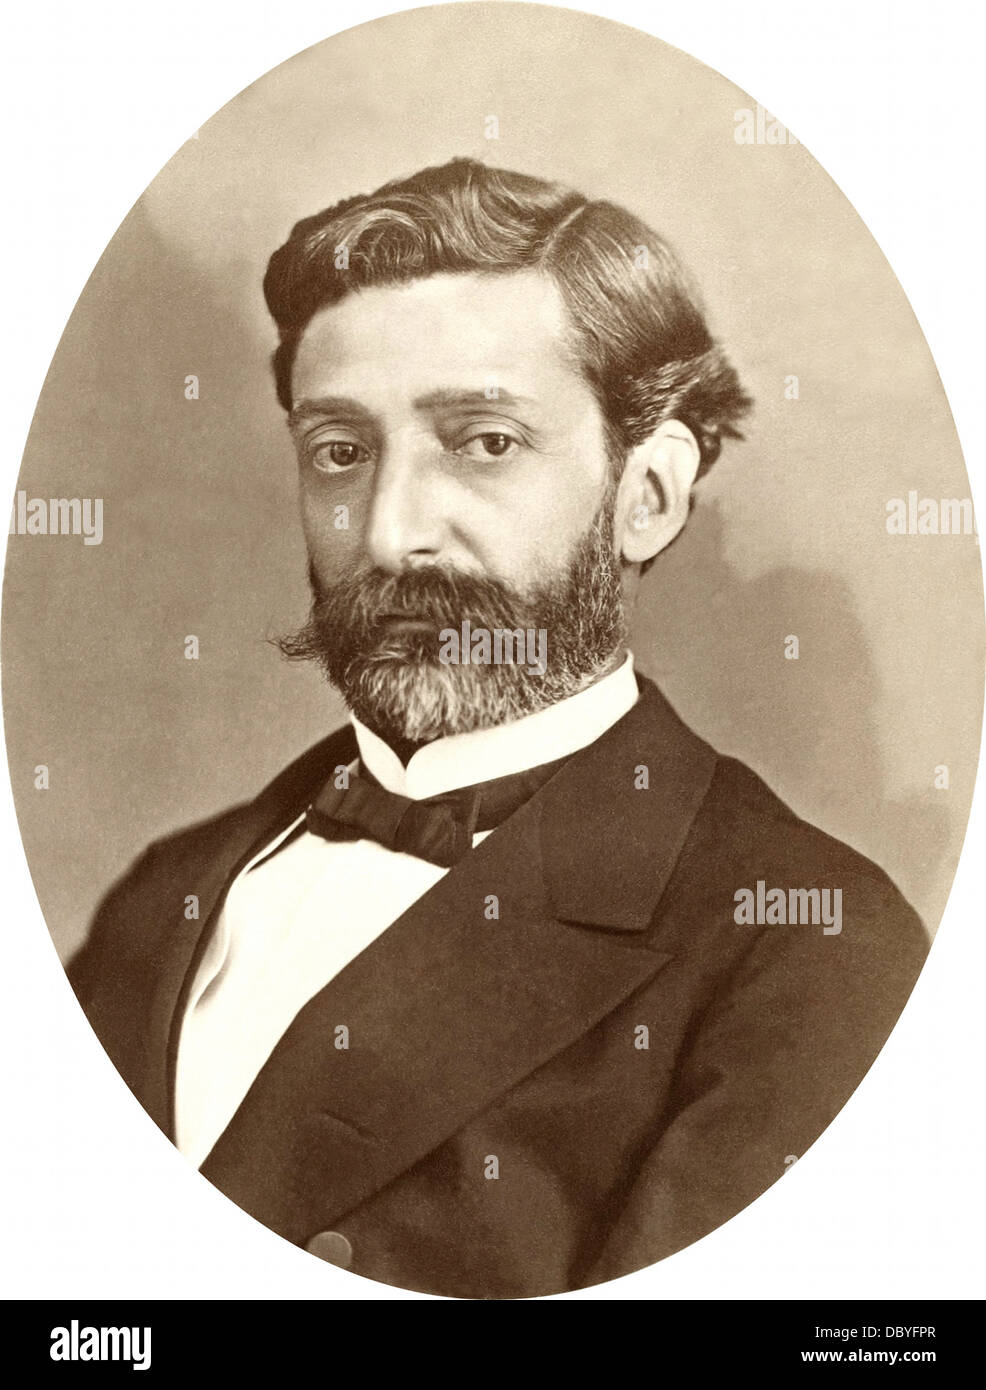 François Édouard Raynal (1830 - 1895 or 98), french navigator, explorer and writer. - Stock Image